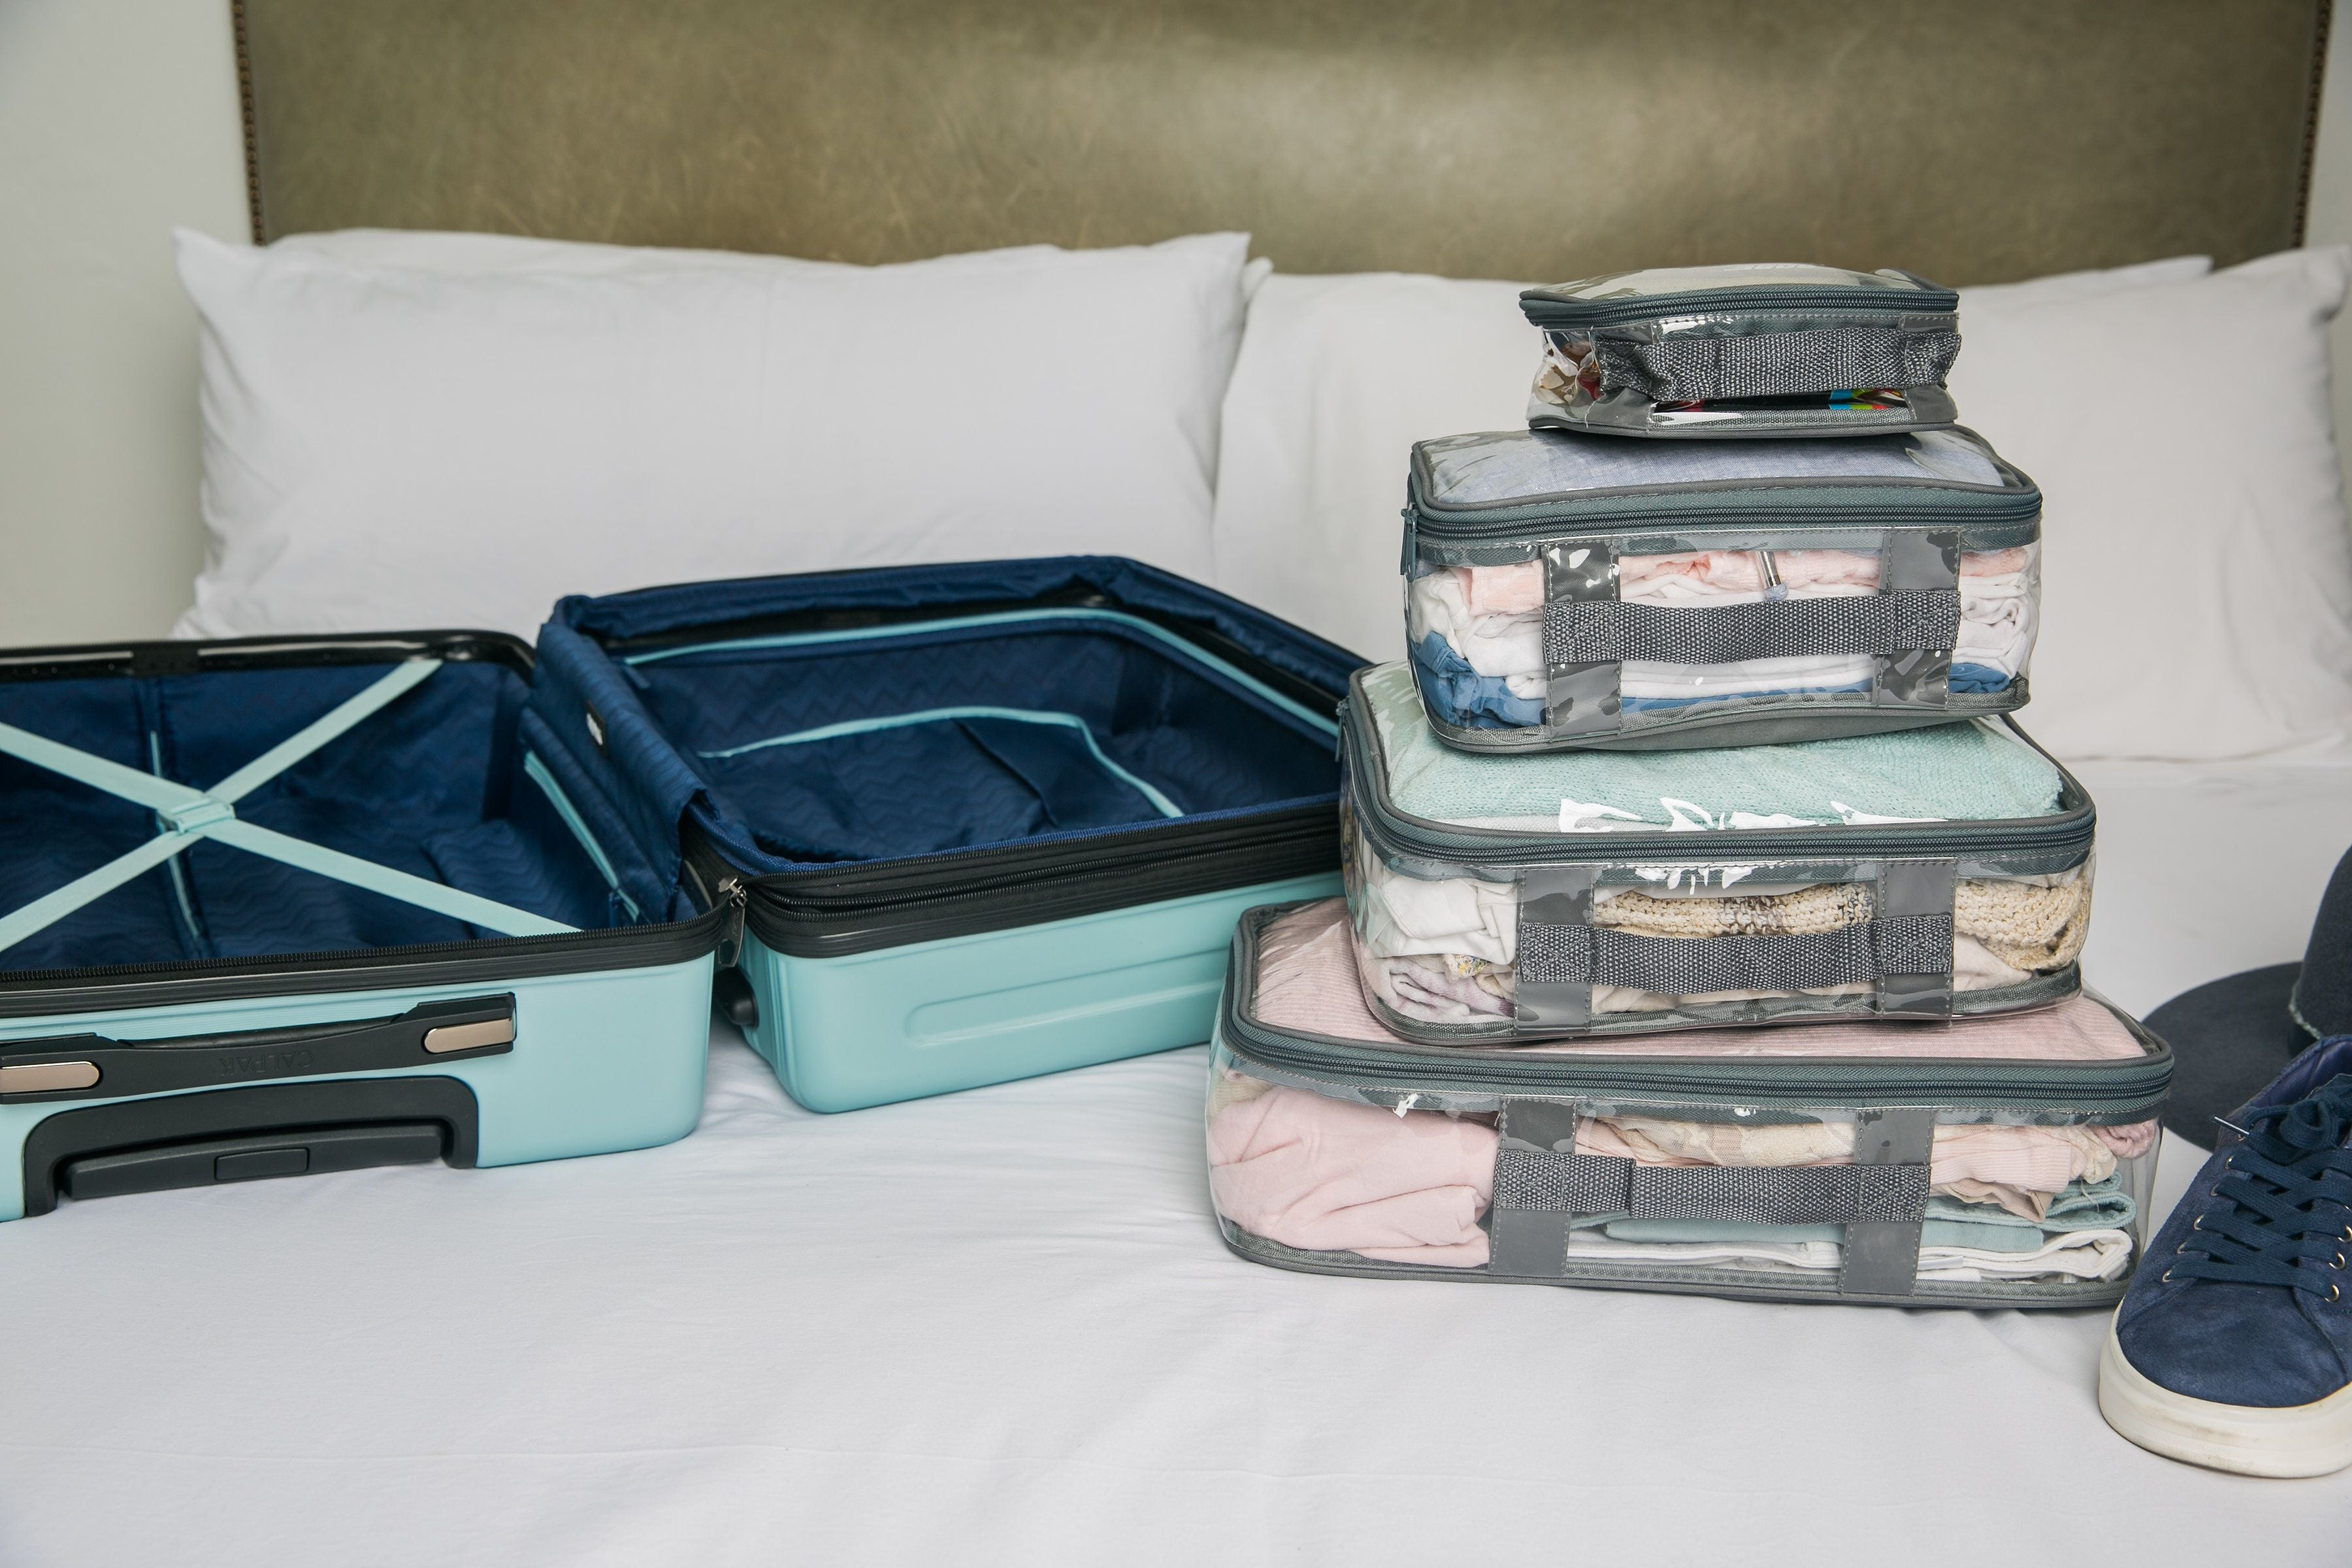 Starter Set in a hard shell suitcase